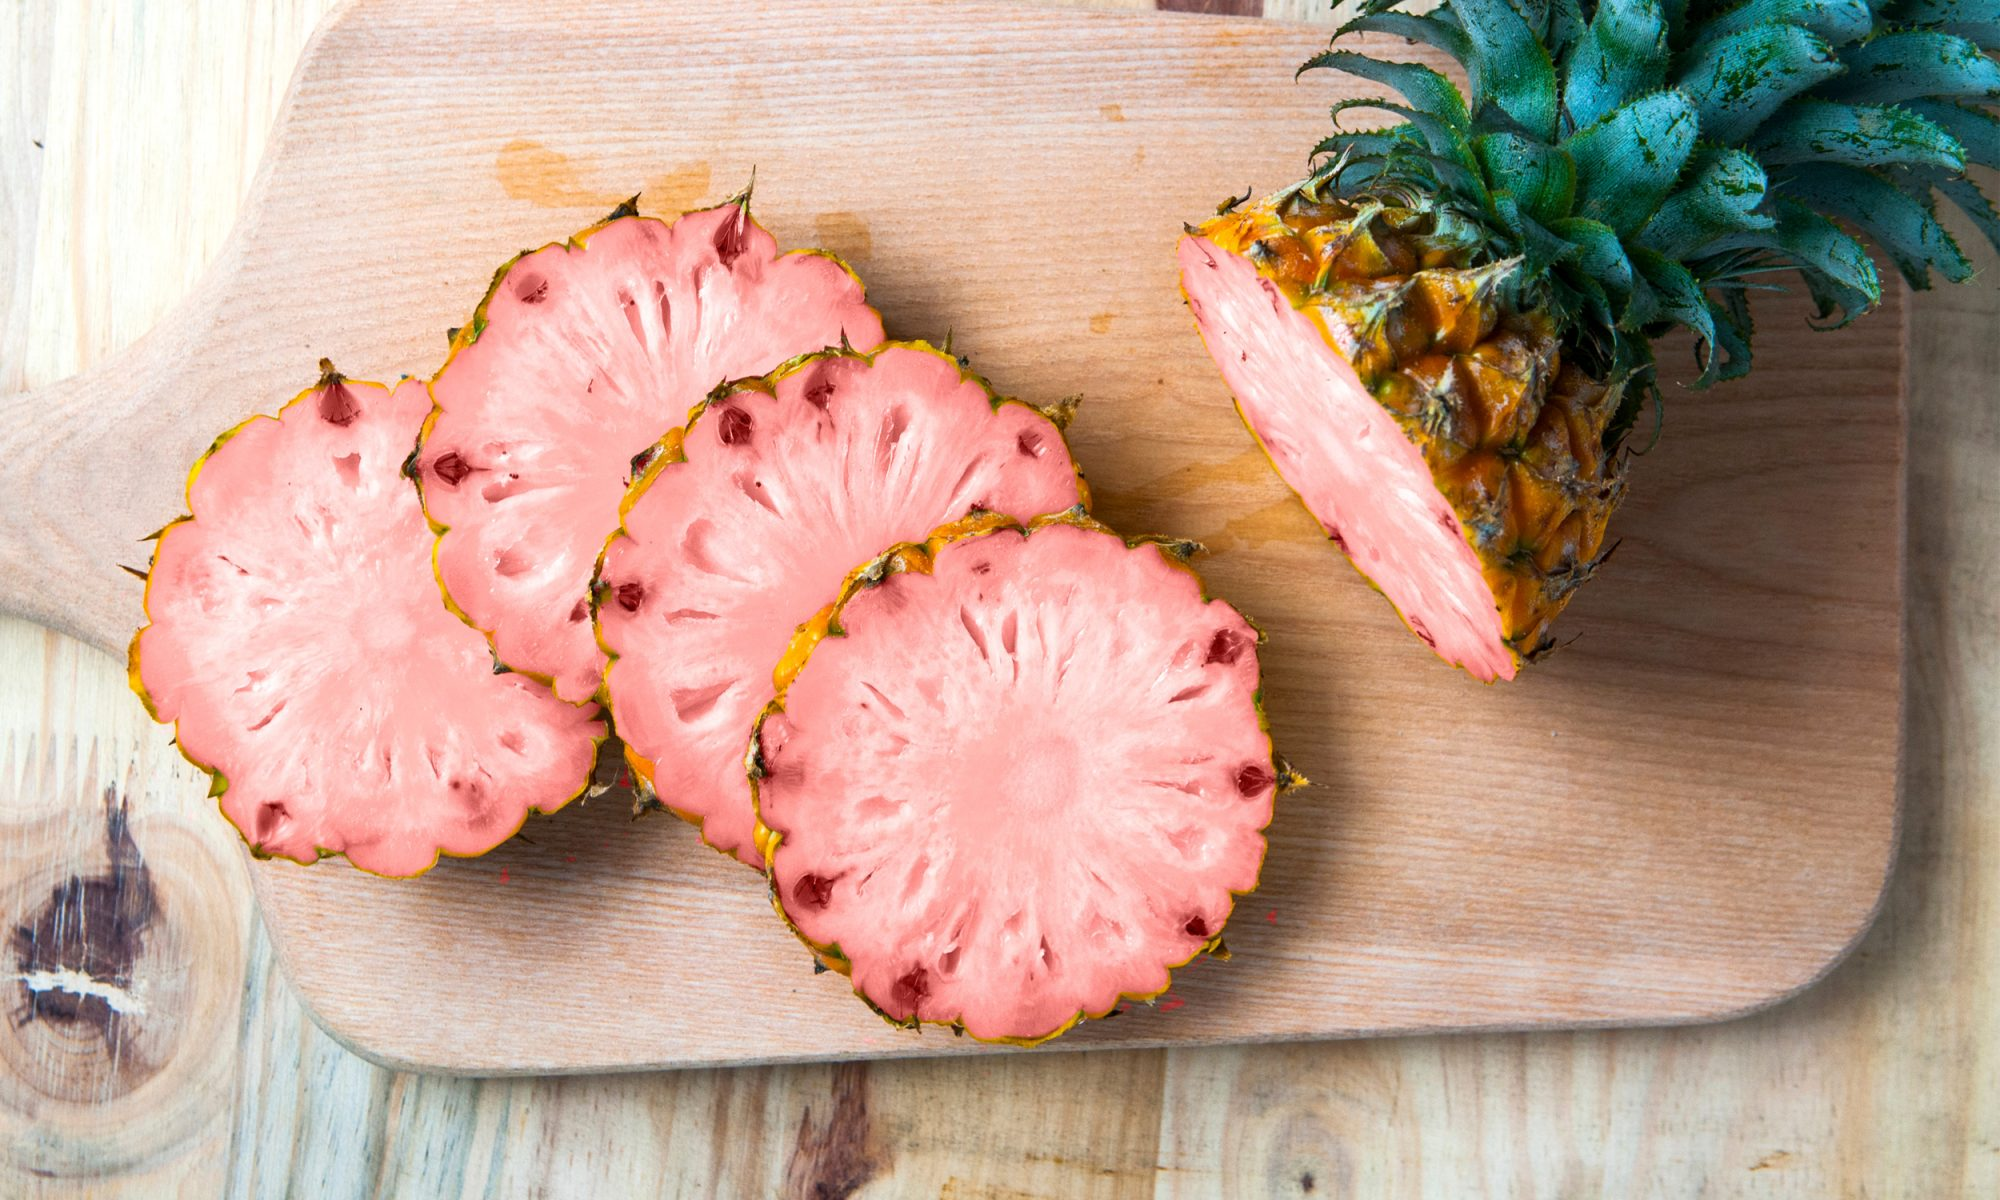 EC: Pink Pineapple Is the New Square Watermelon